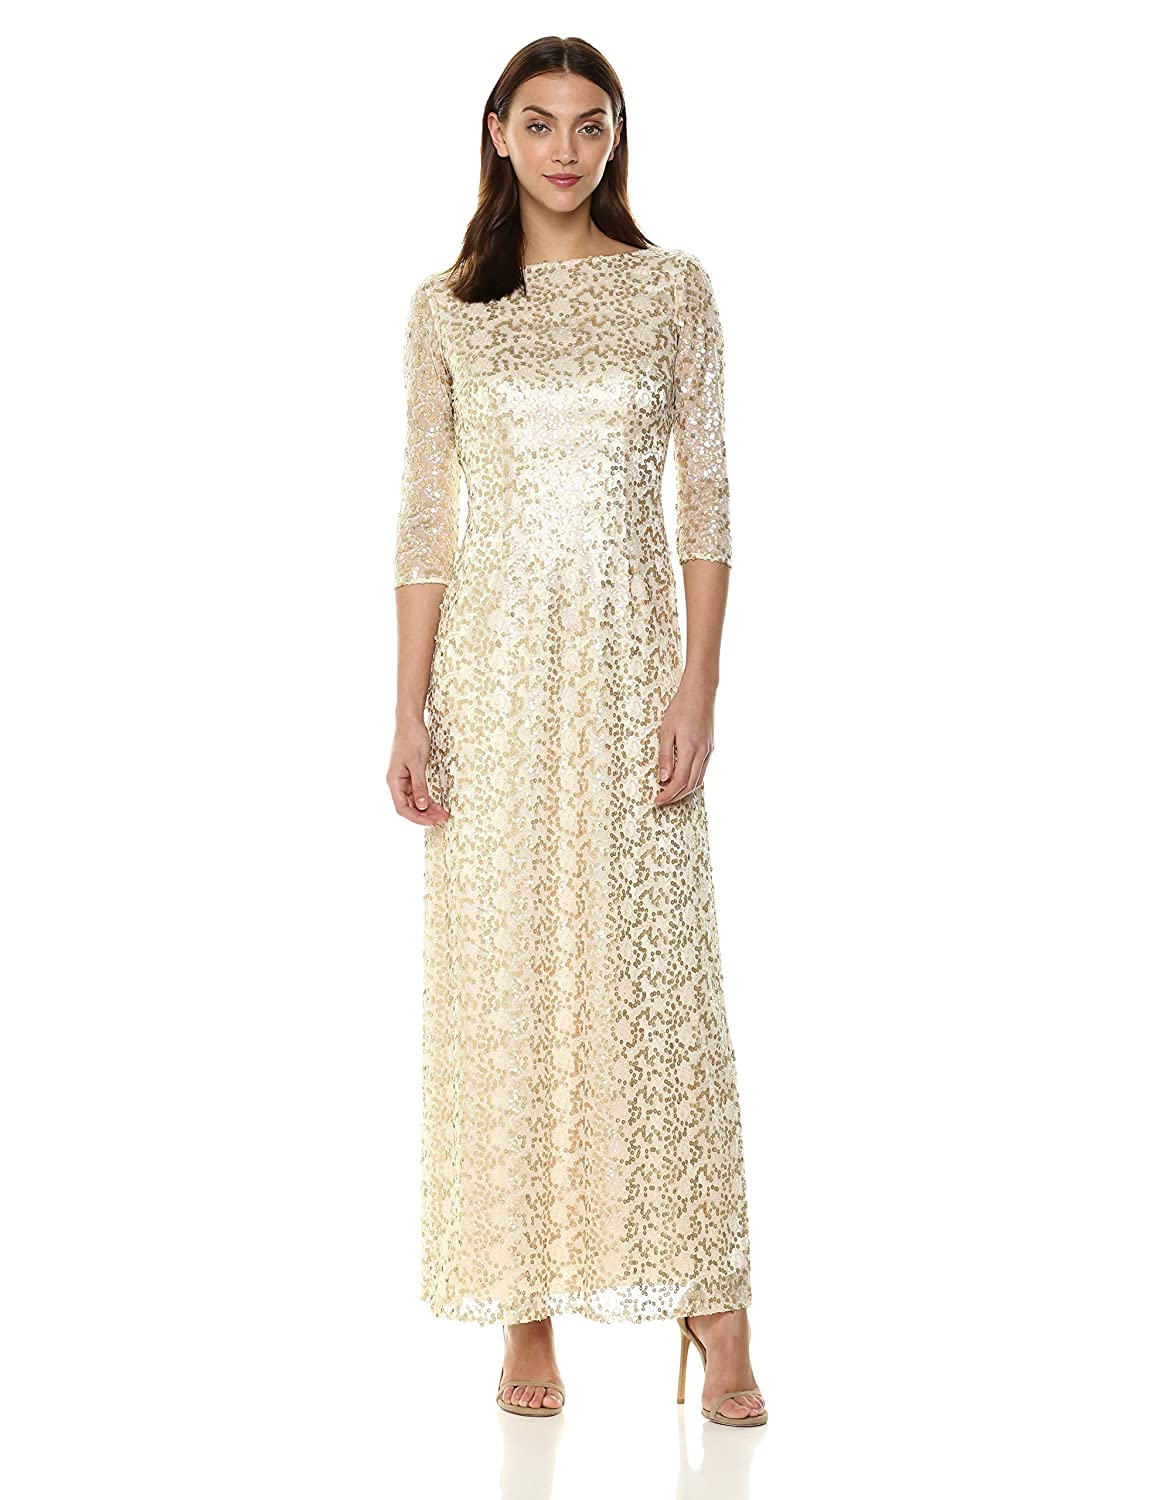 Champagne gold Tahari Womens Three Quarter Sleeve Aline Special Occasion Dress